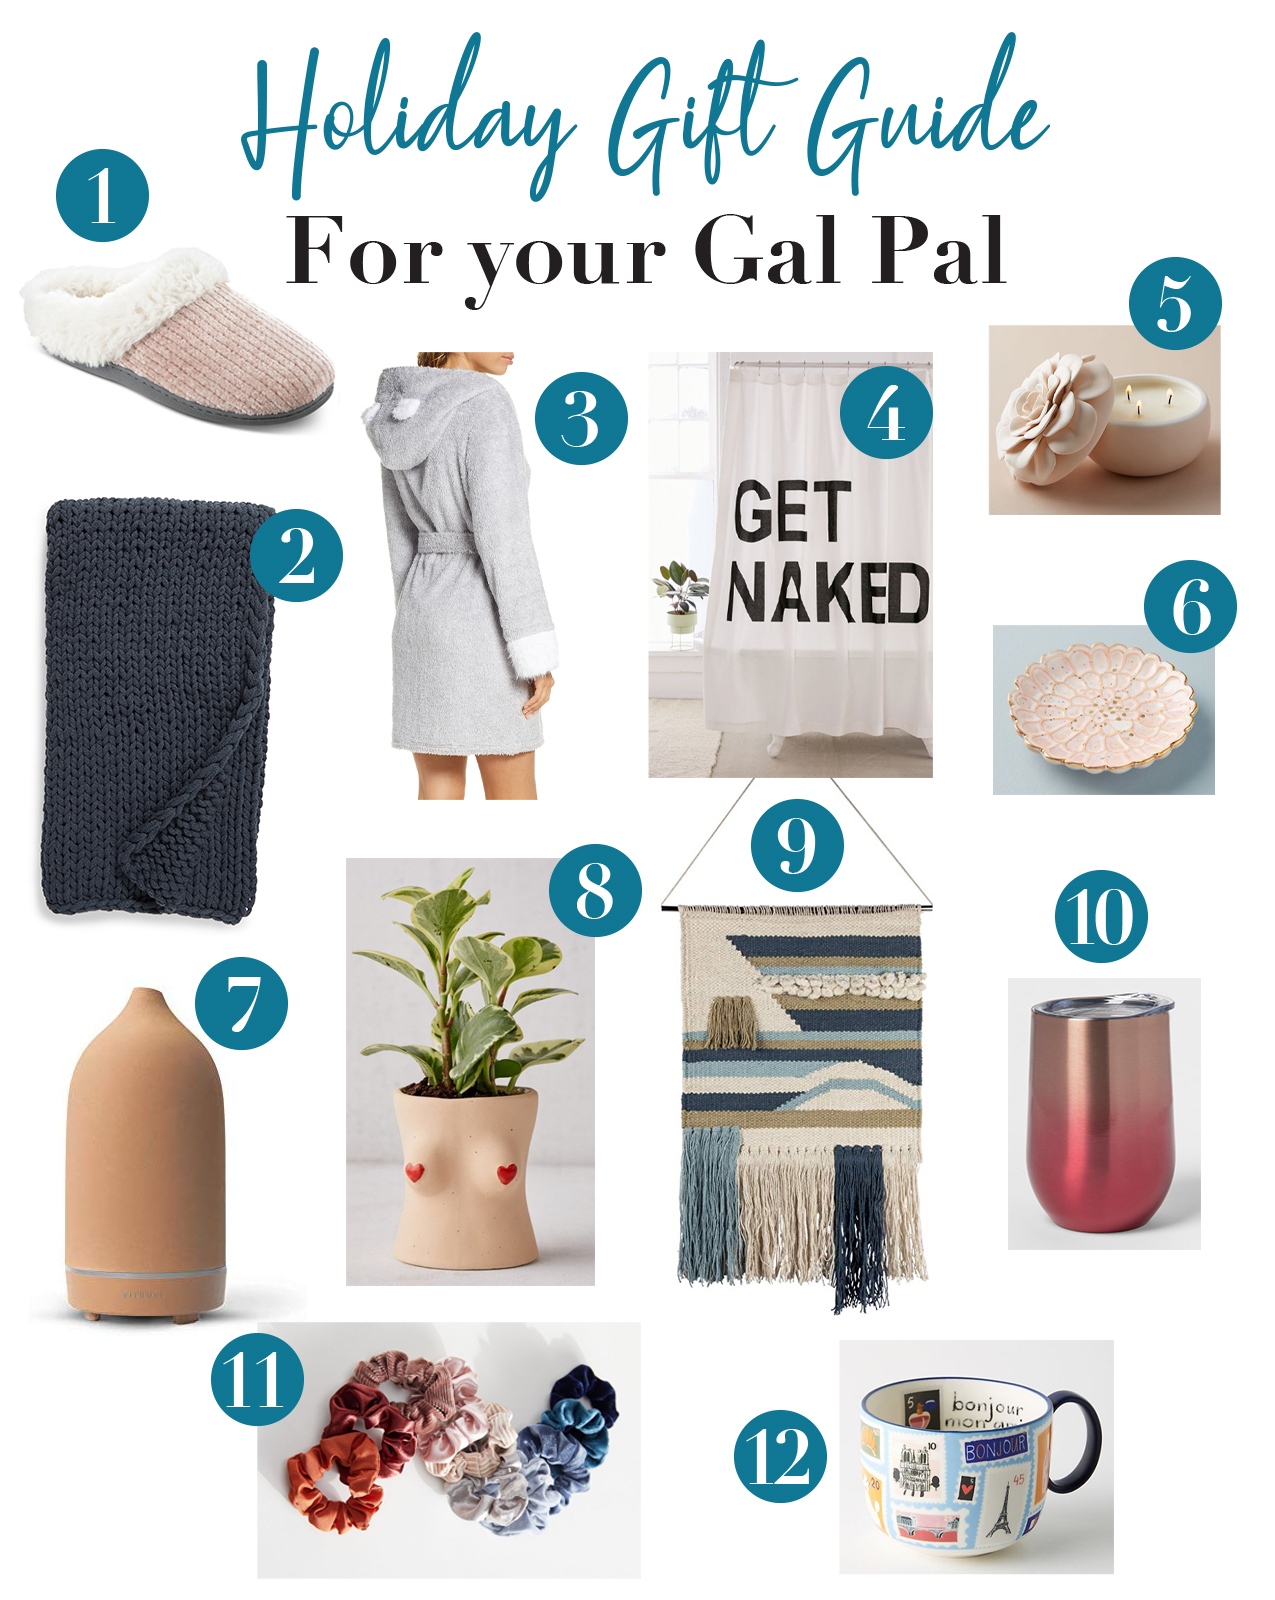 2019 Holiday Gift Guide for you Gal Pal